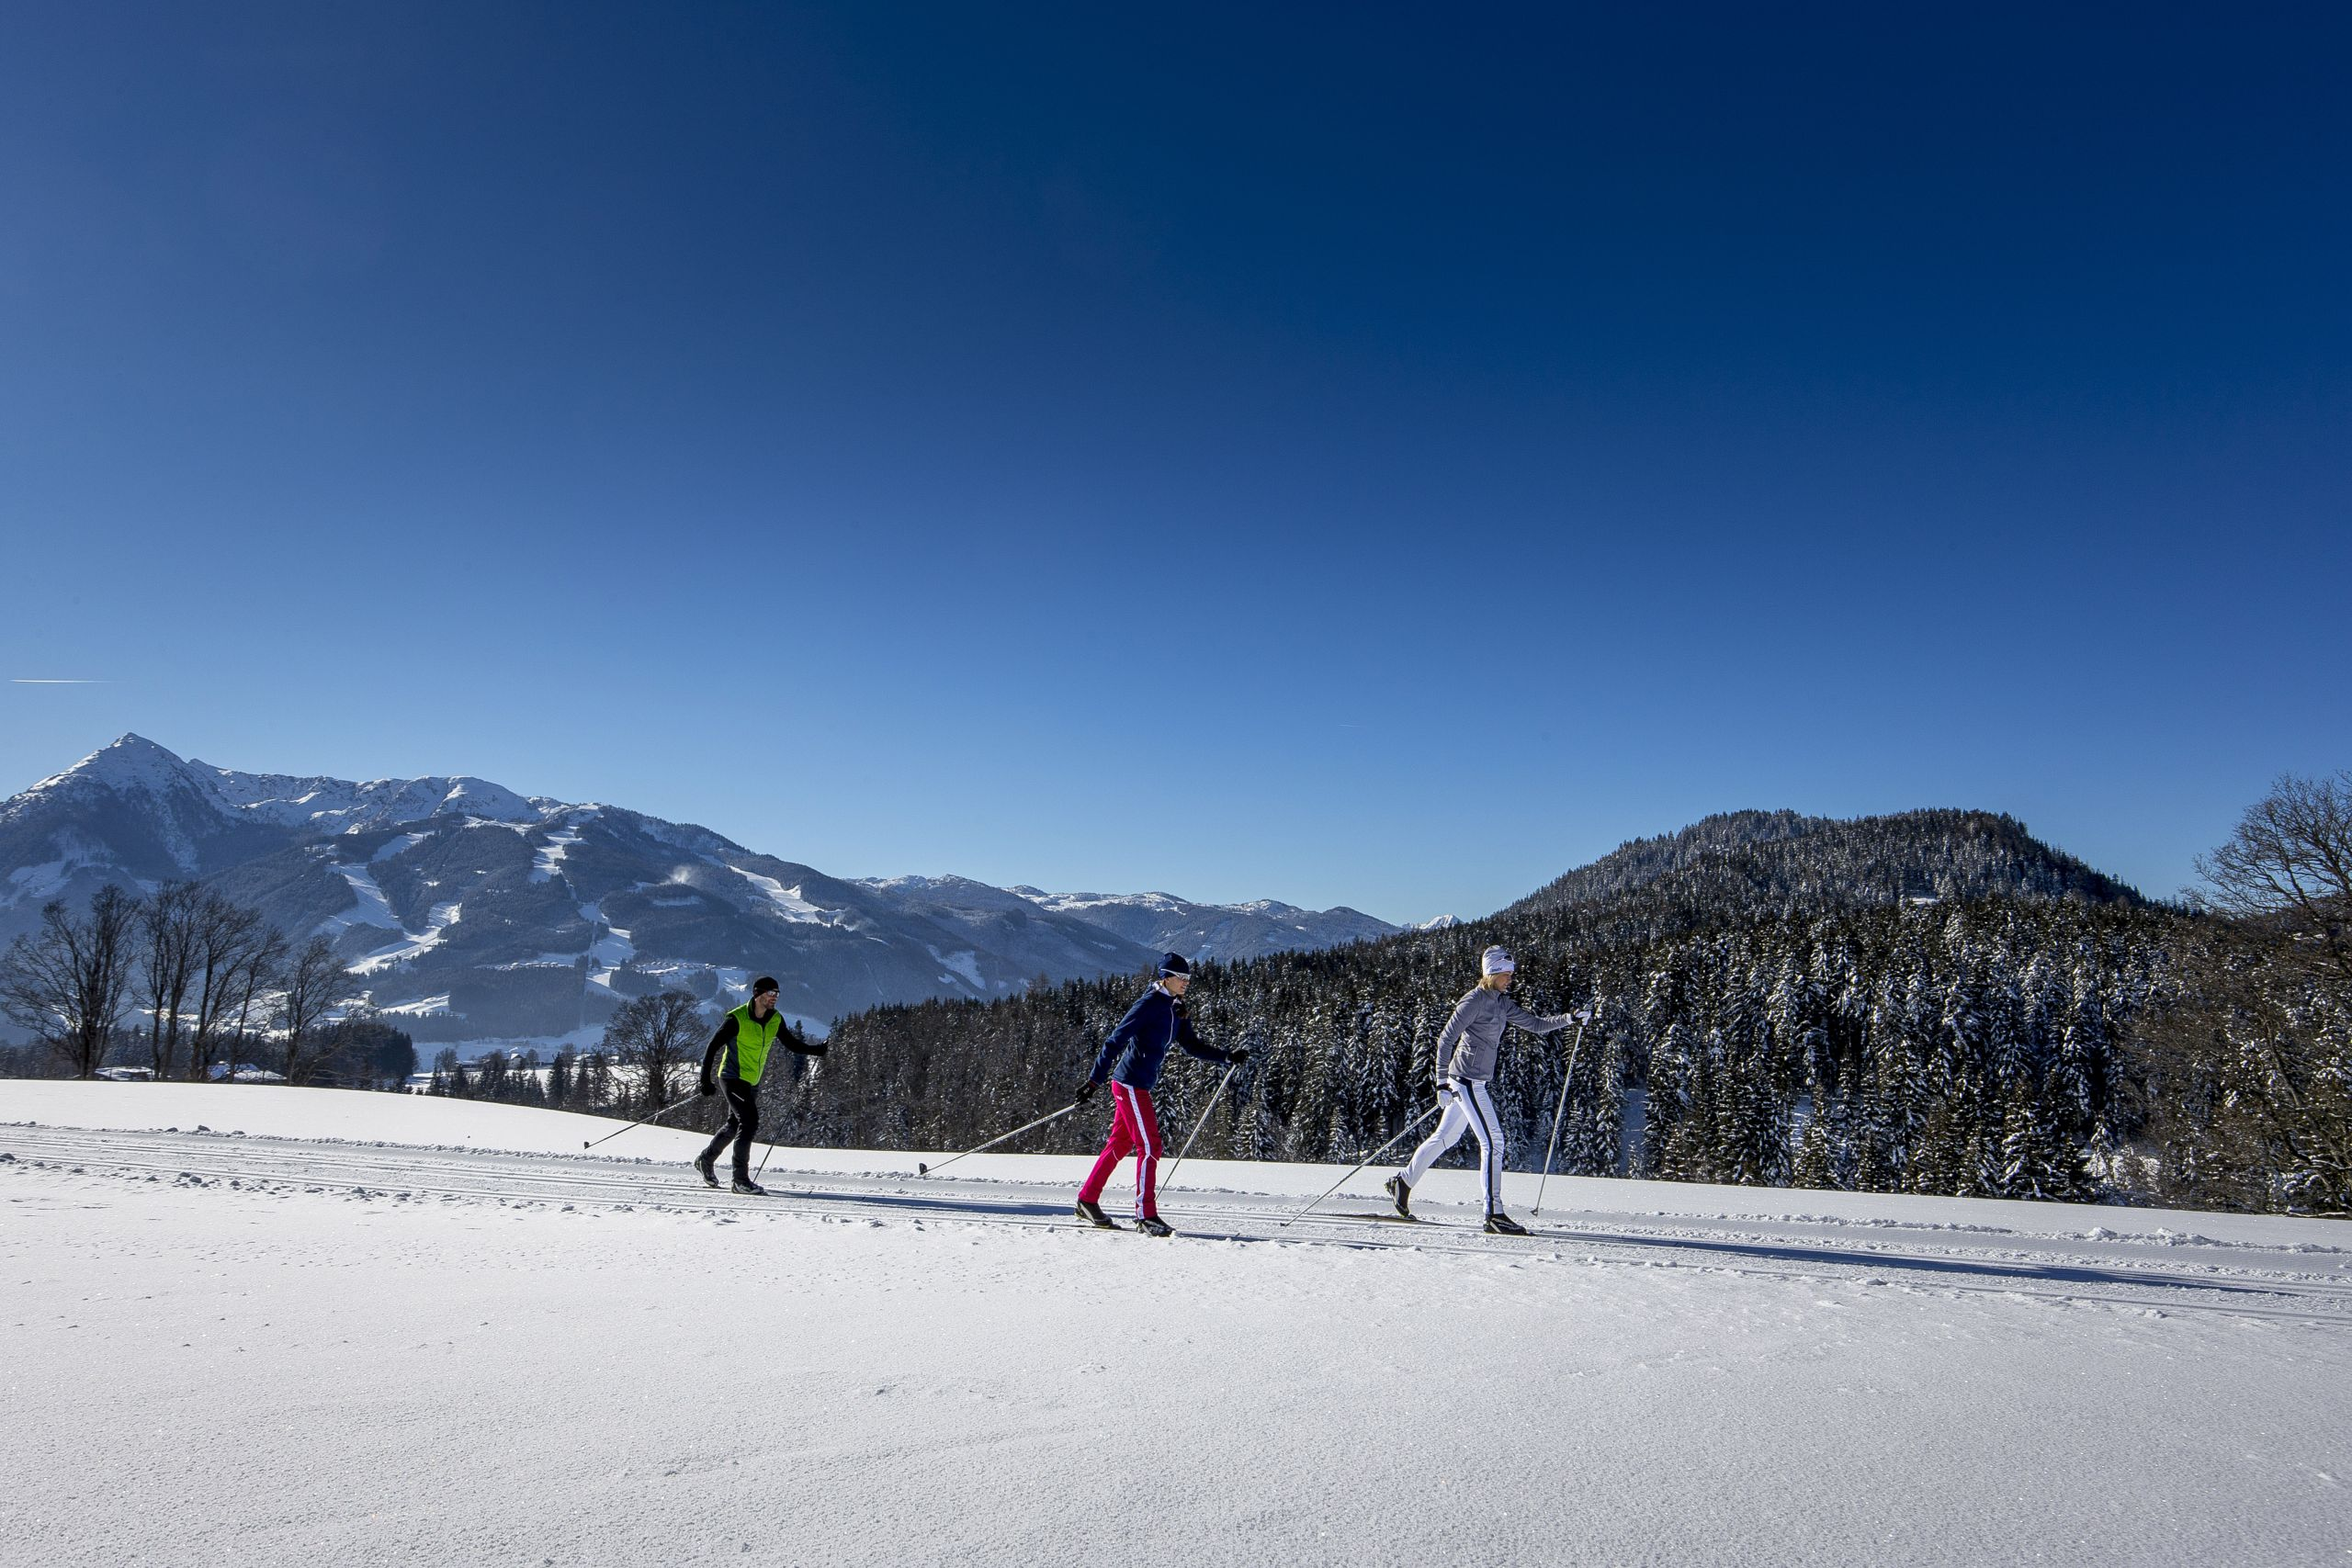 Cross Country Ski Holidays, Langlaufen in Ramsau am Dachstein, © Tom Lamm